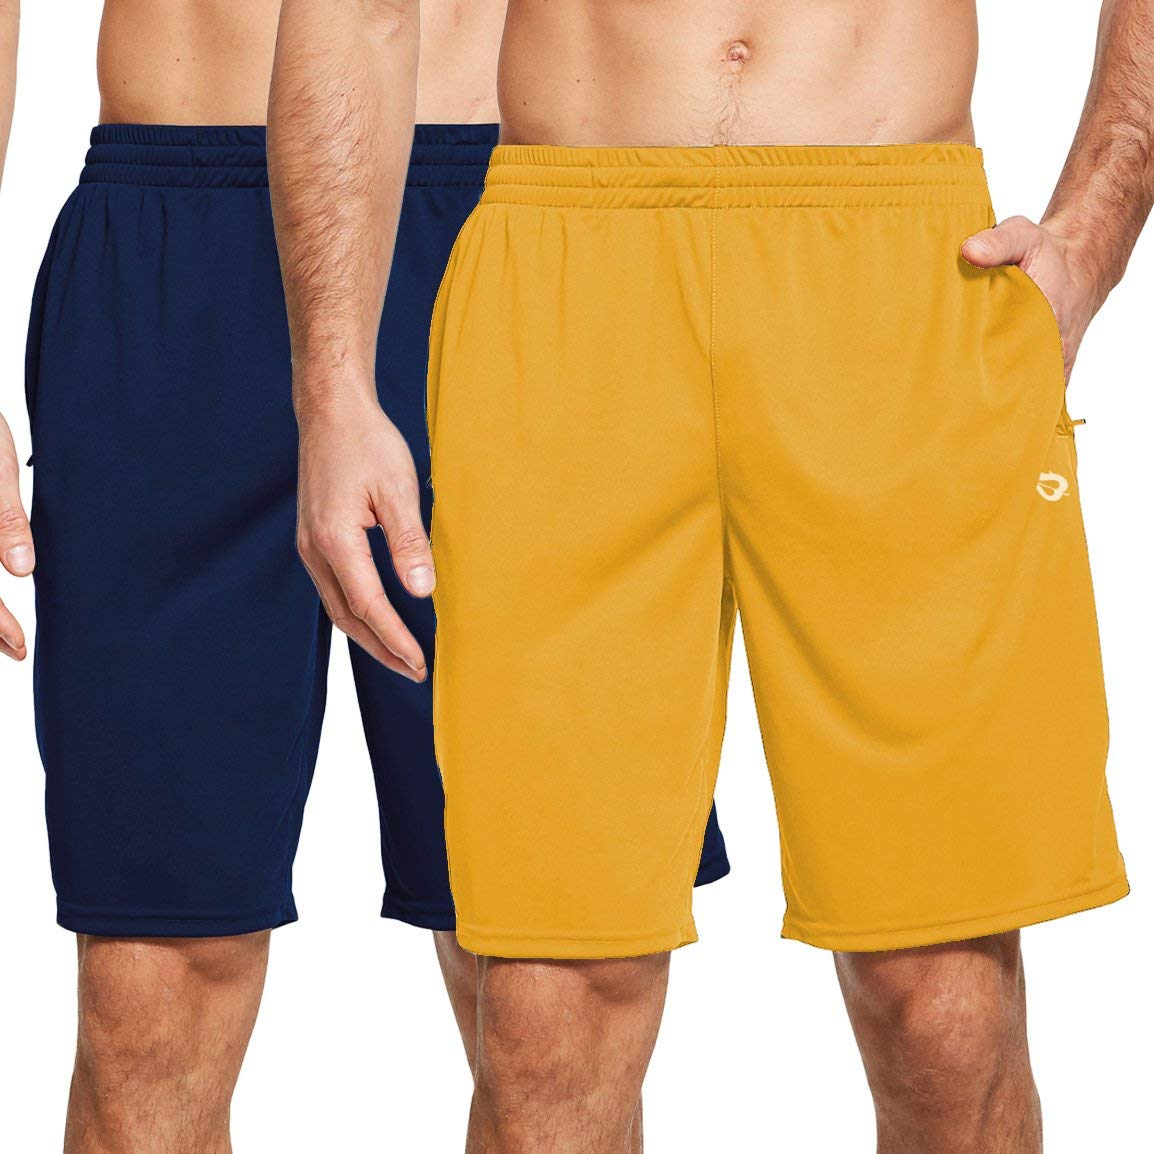 BALEAF Men's 9'' Quick Dry Running Athletic Shorts Gym Training Zipper Pockets Workout 2-Pack